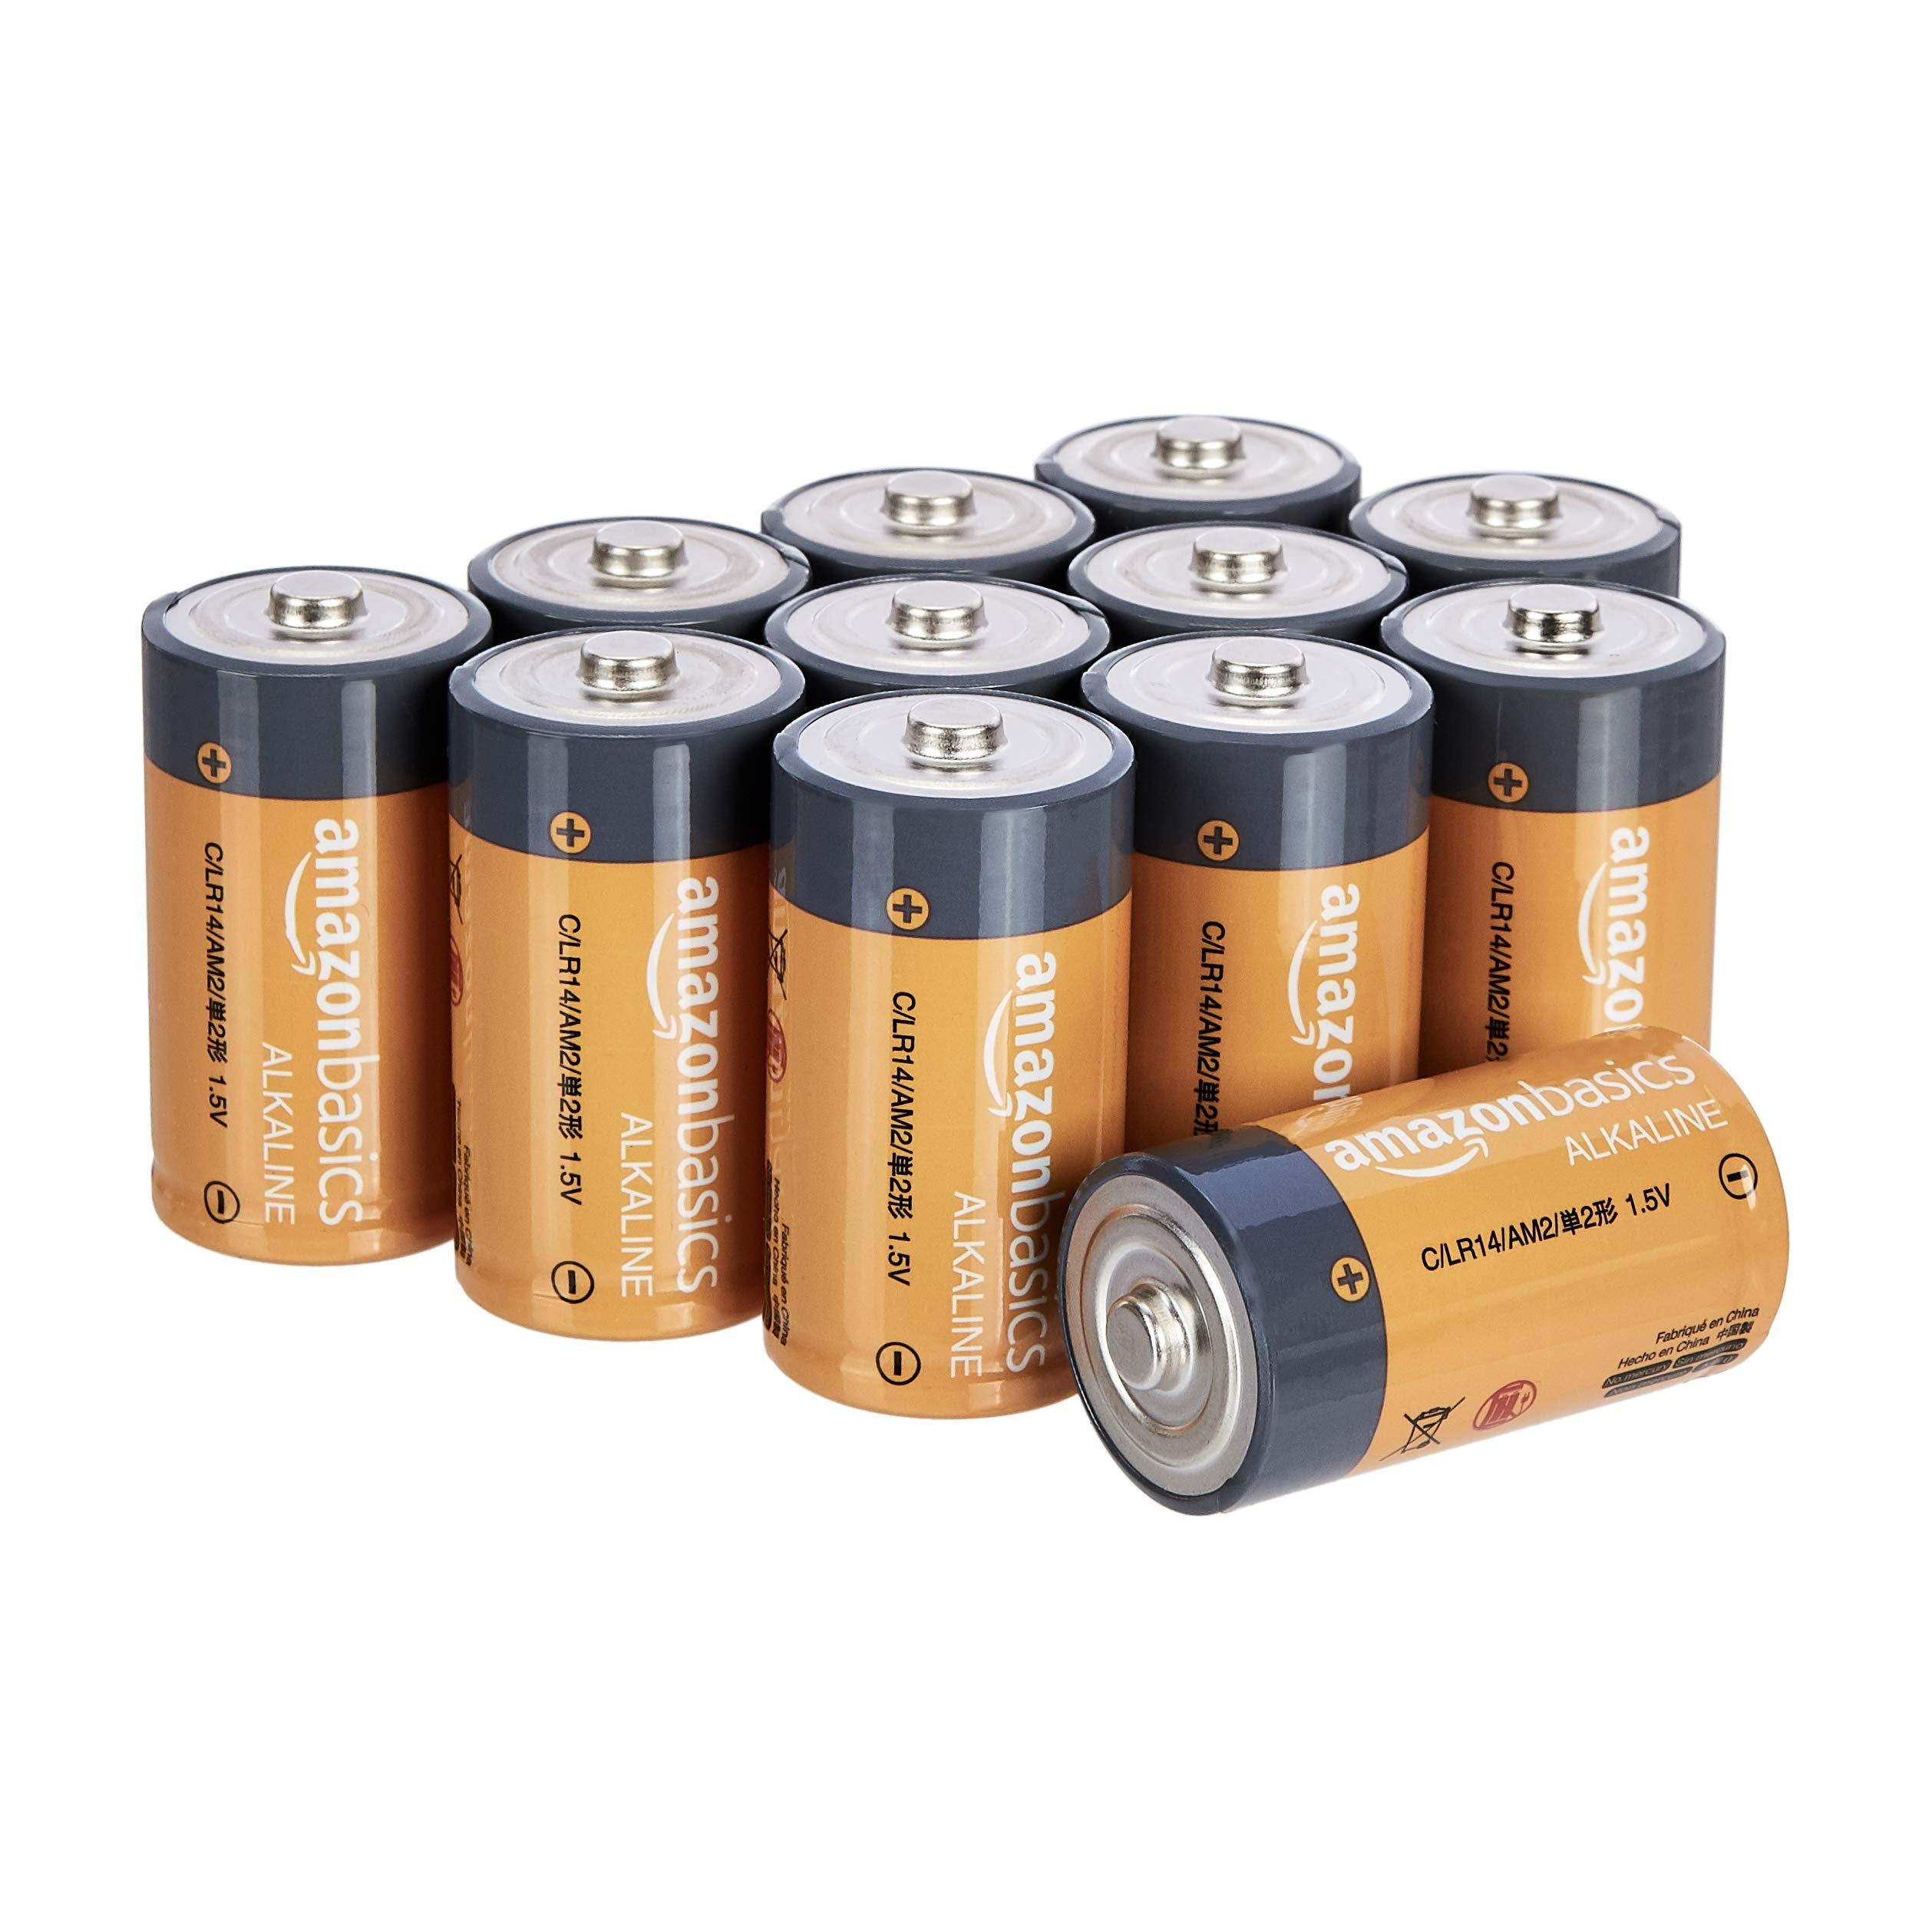 Amazon Basics 12 Pack C Cell All-Purpose Alkaline Batteries, 5-Year Shelf Life